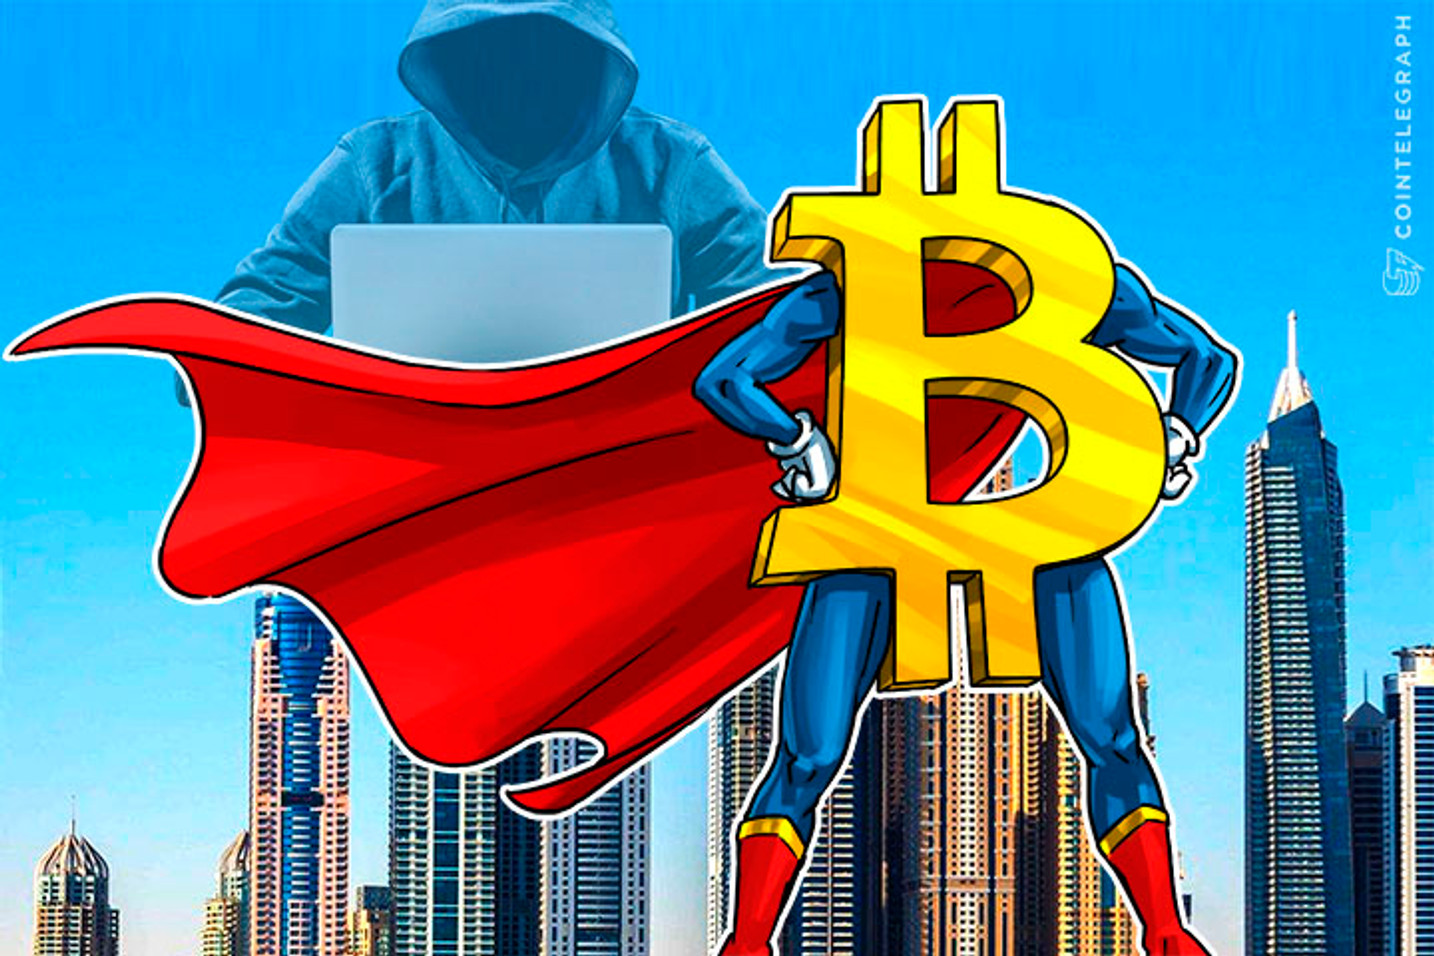 Despite Recent Hacks, Bitcoin Remains The Superhero